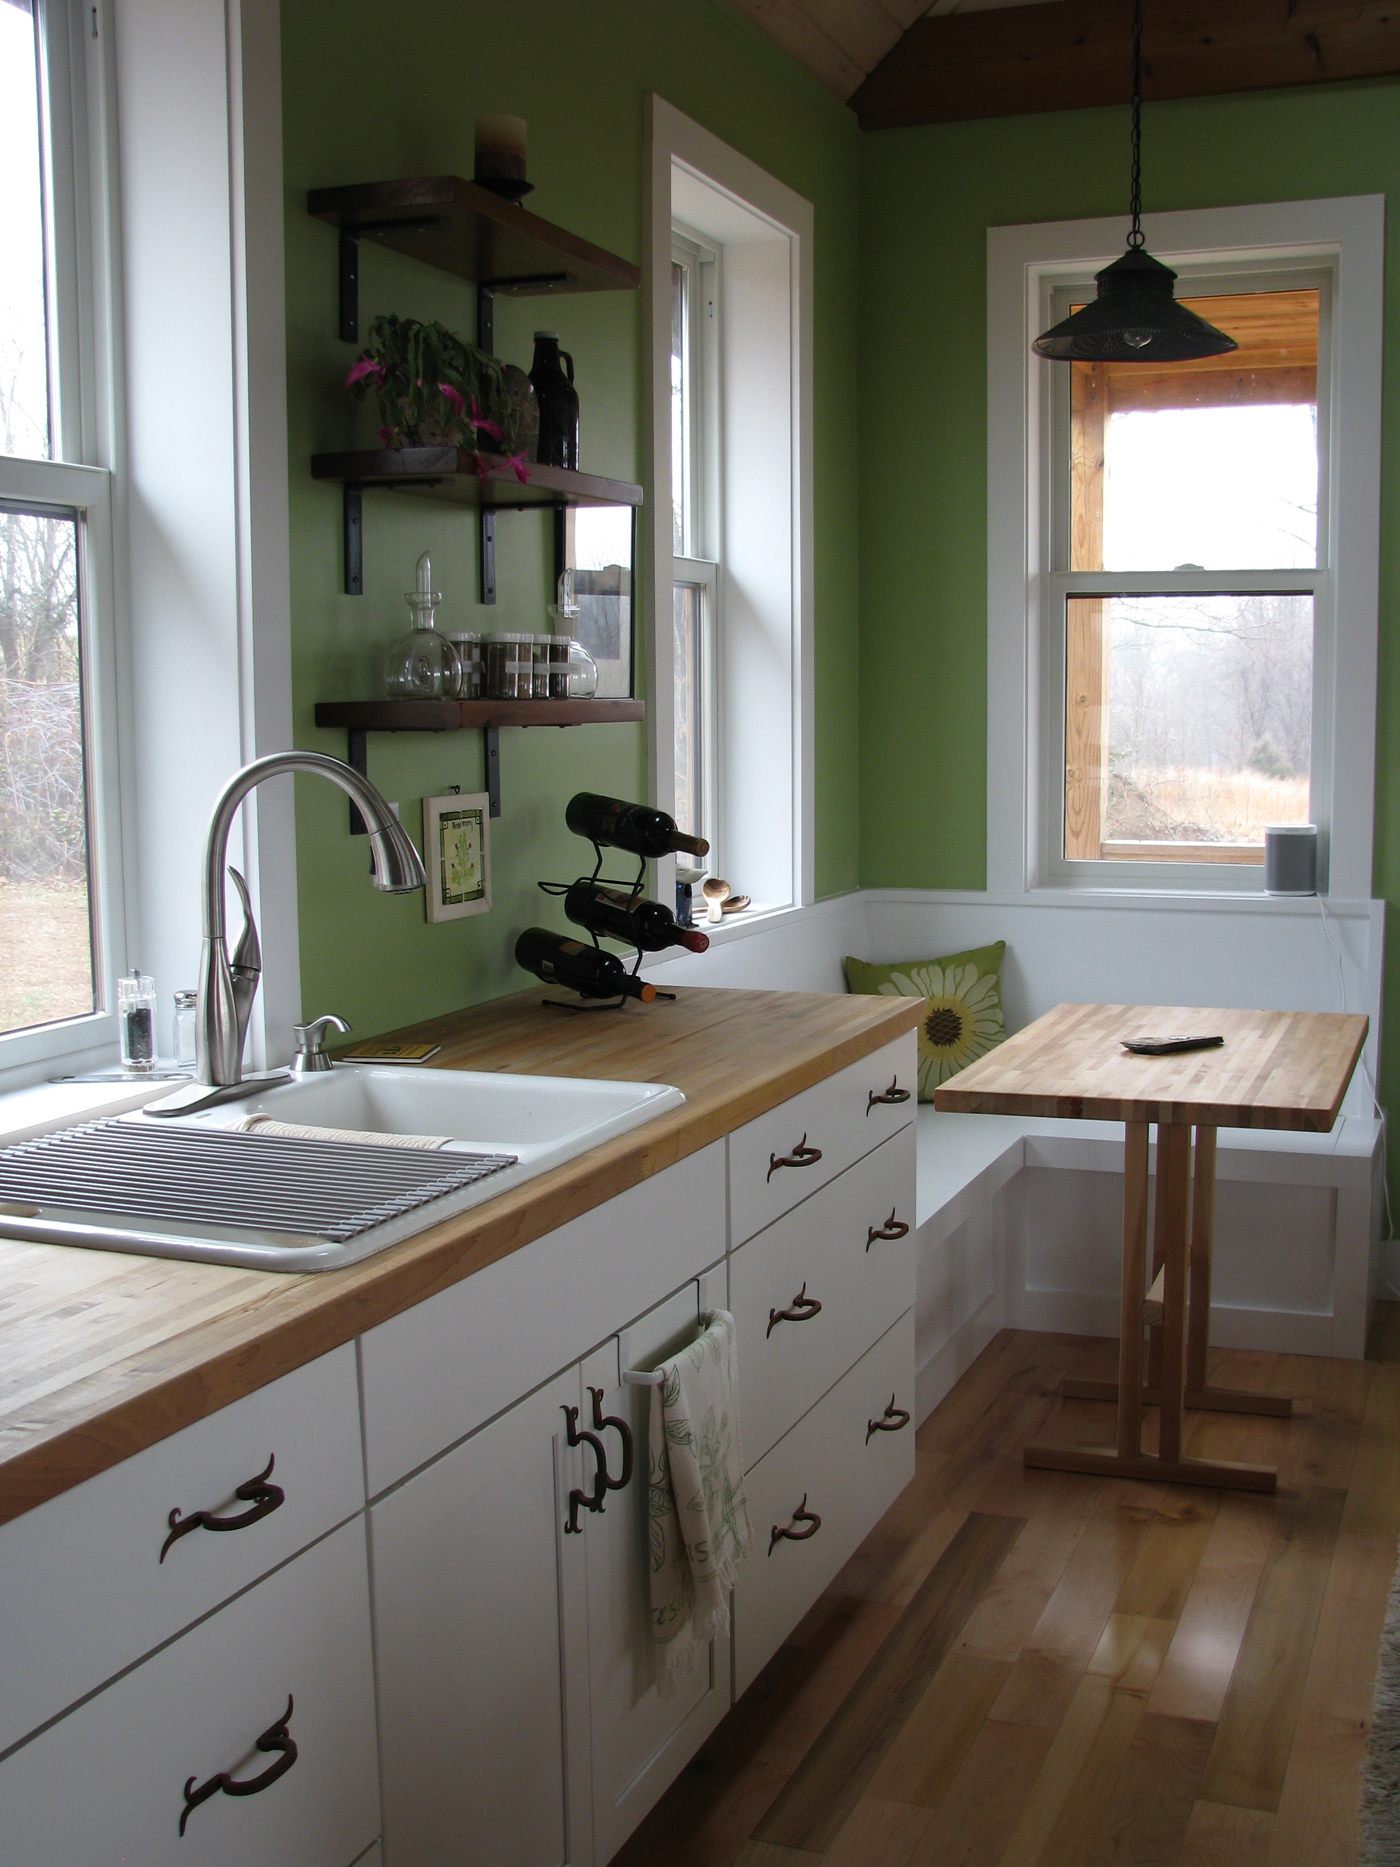 GuestHouse_WebsiteGallery_KitchenIMG_0399